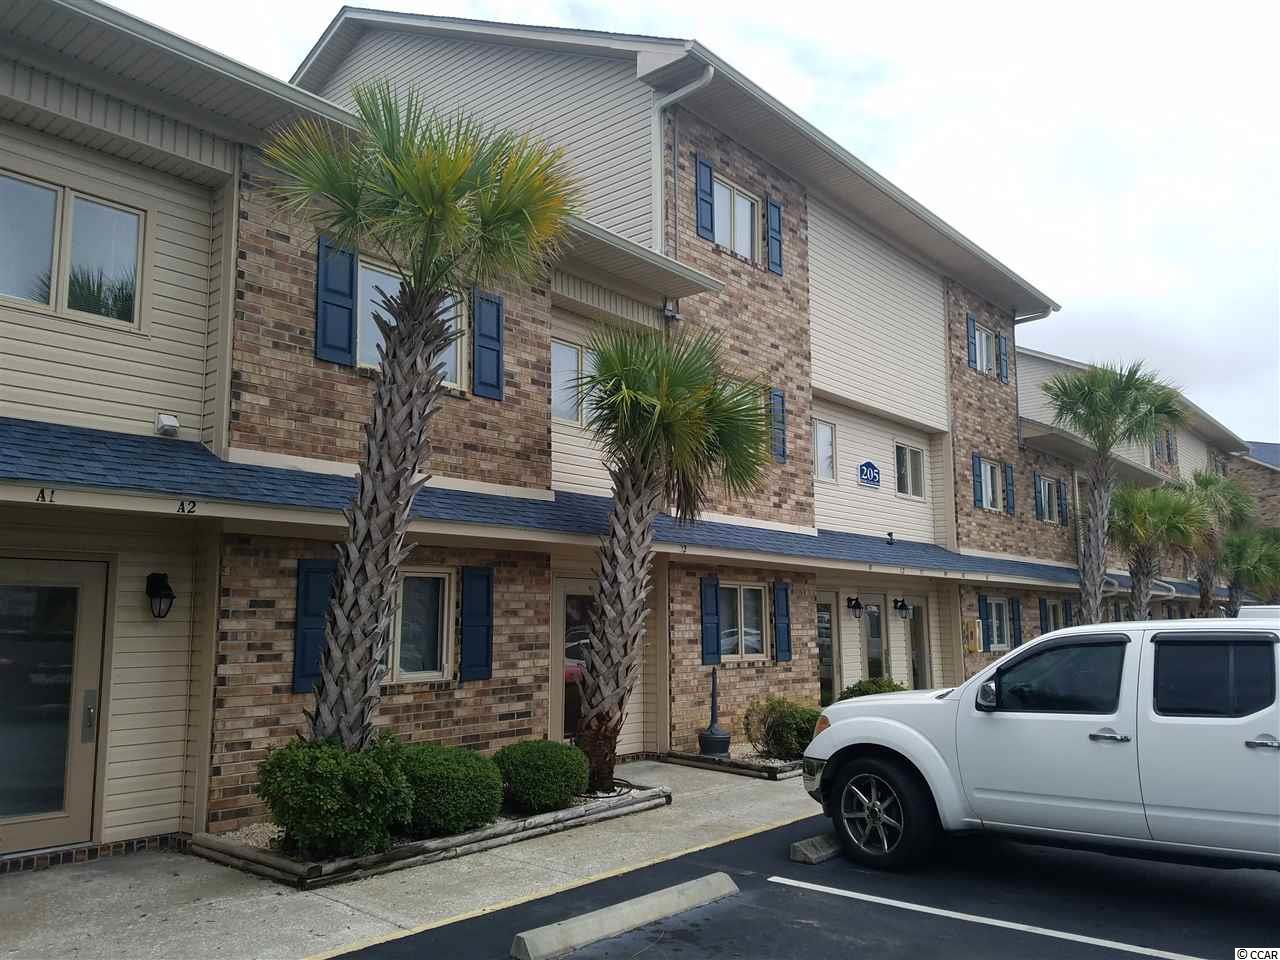 Plantation Golf Villas! Located in the popular Plantation Resort area. Spacious 2br/2ba condo located on the first floor. Nice green space and pond view from back patio. Low HOA fees and close to the beach.